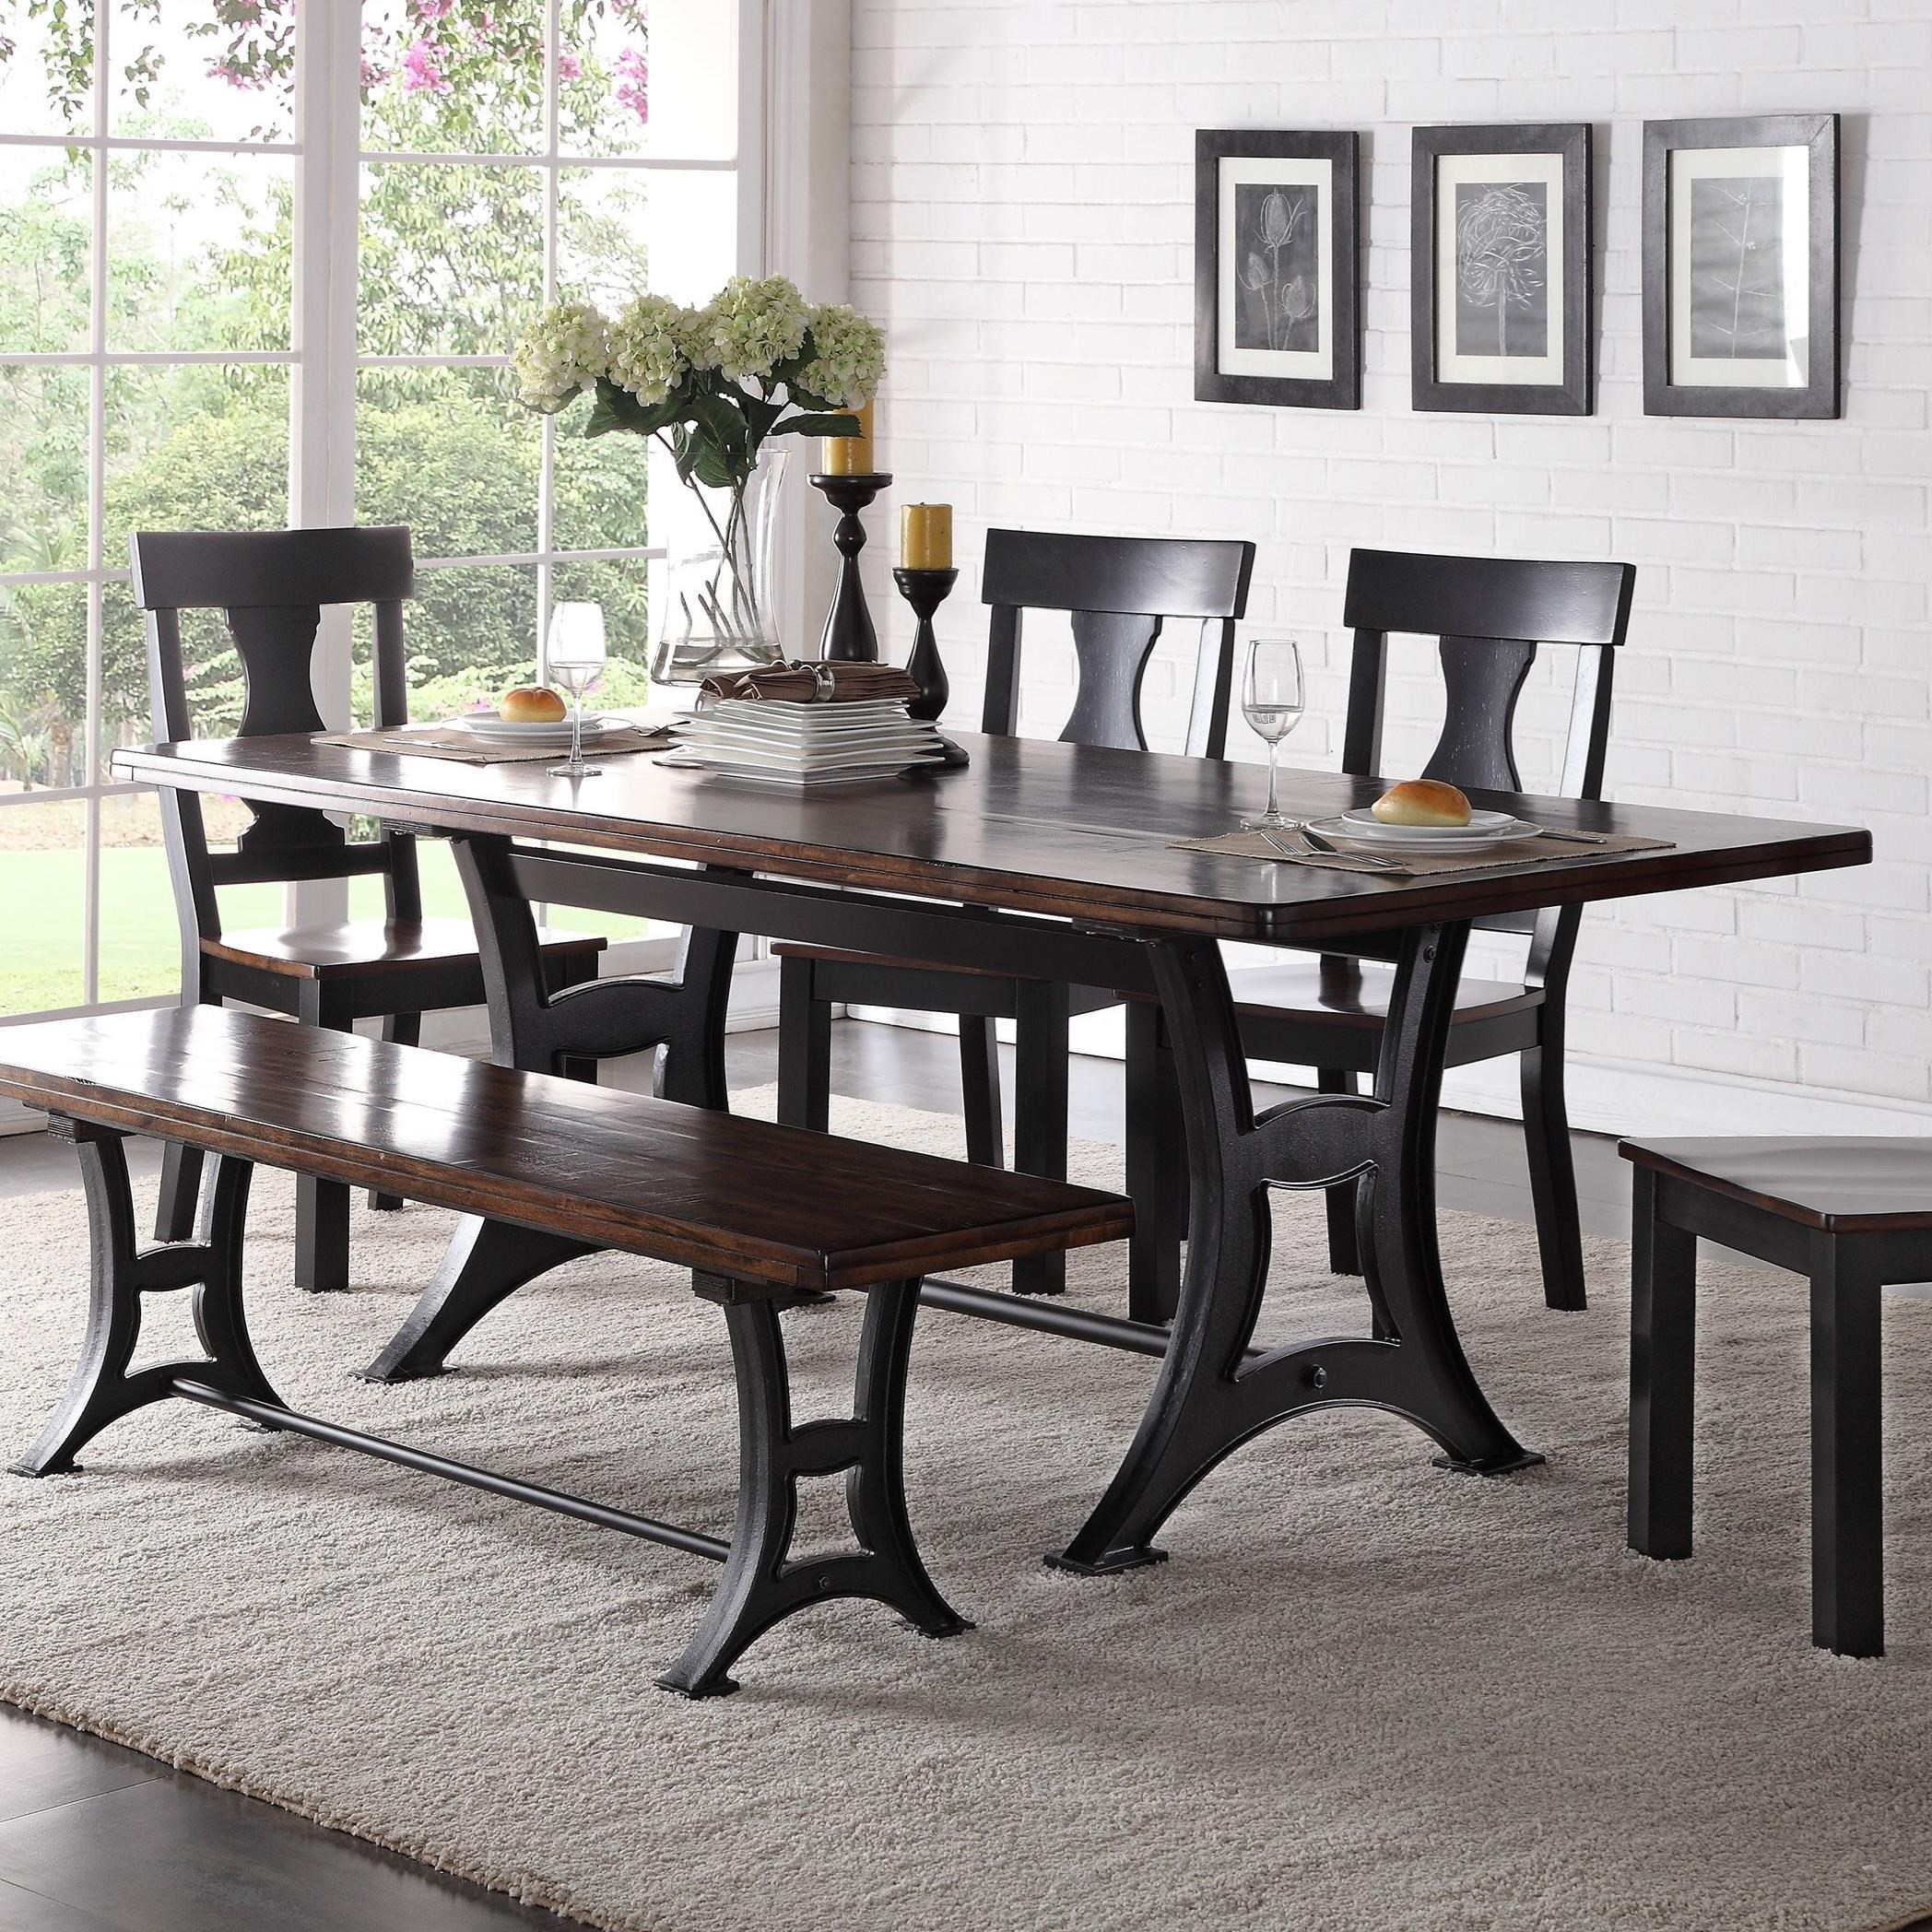 Crown Mark Astor Industrial Dining Table with Trestle Base and Rustic Top & Crown Mark Astor Industrial Dining Table with Trestle Base and ...